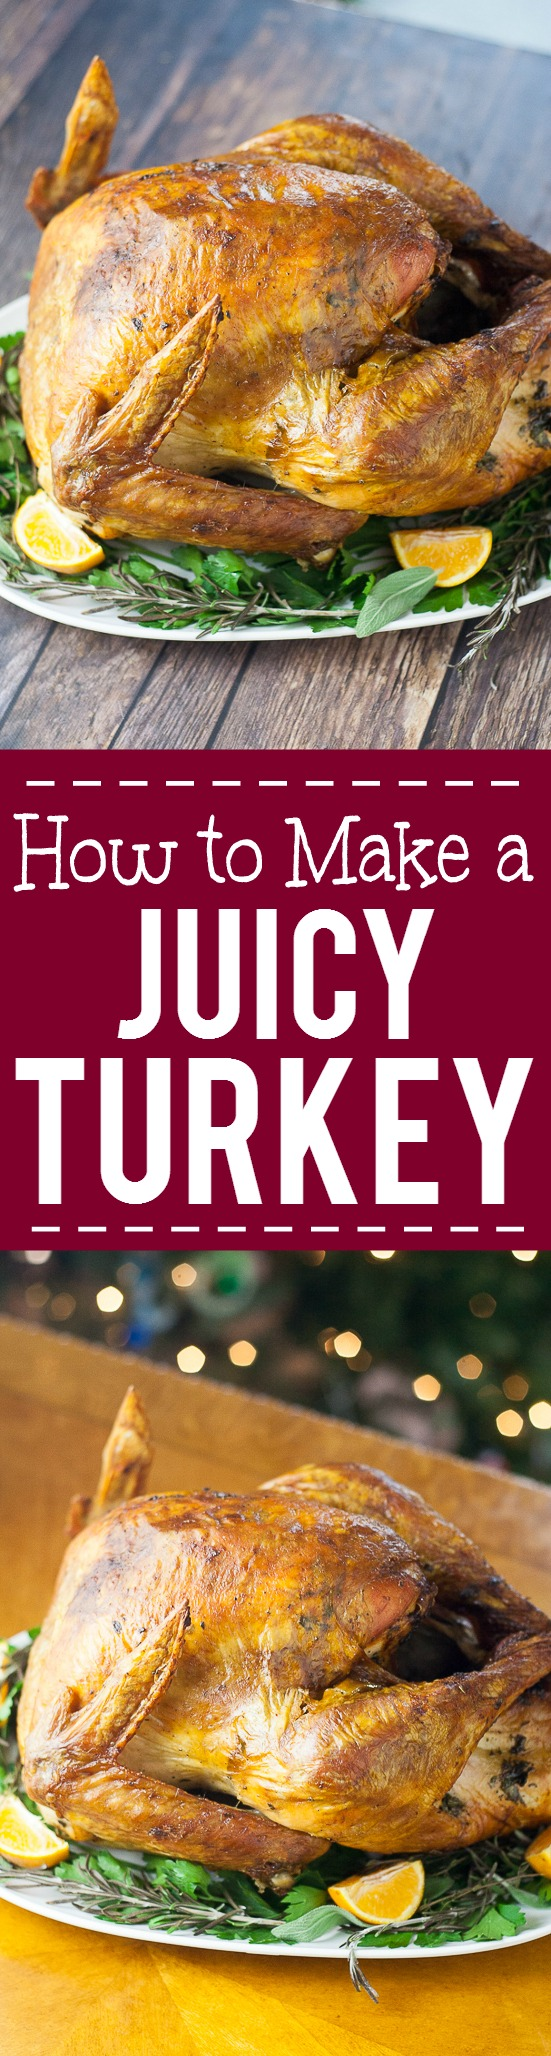 7 easy tips for How to Make a Juicy Turkey -For a juicy, golden, beautiful and delicious turkey this Thanksgiving, check out these 7 tips for how to make a juicy turkey.